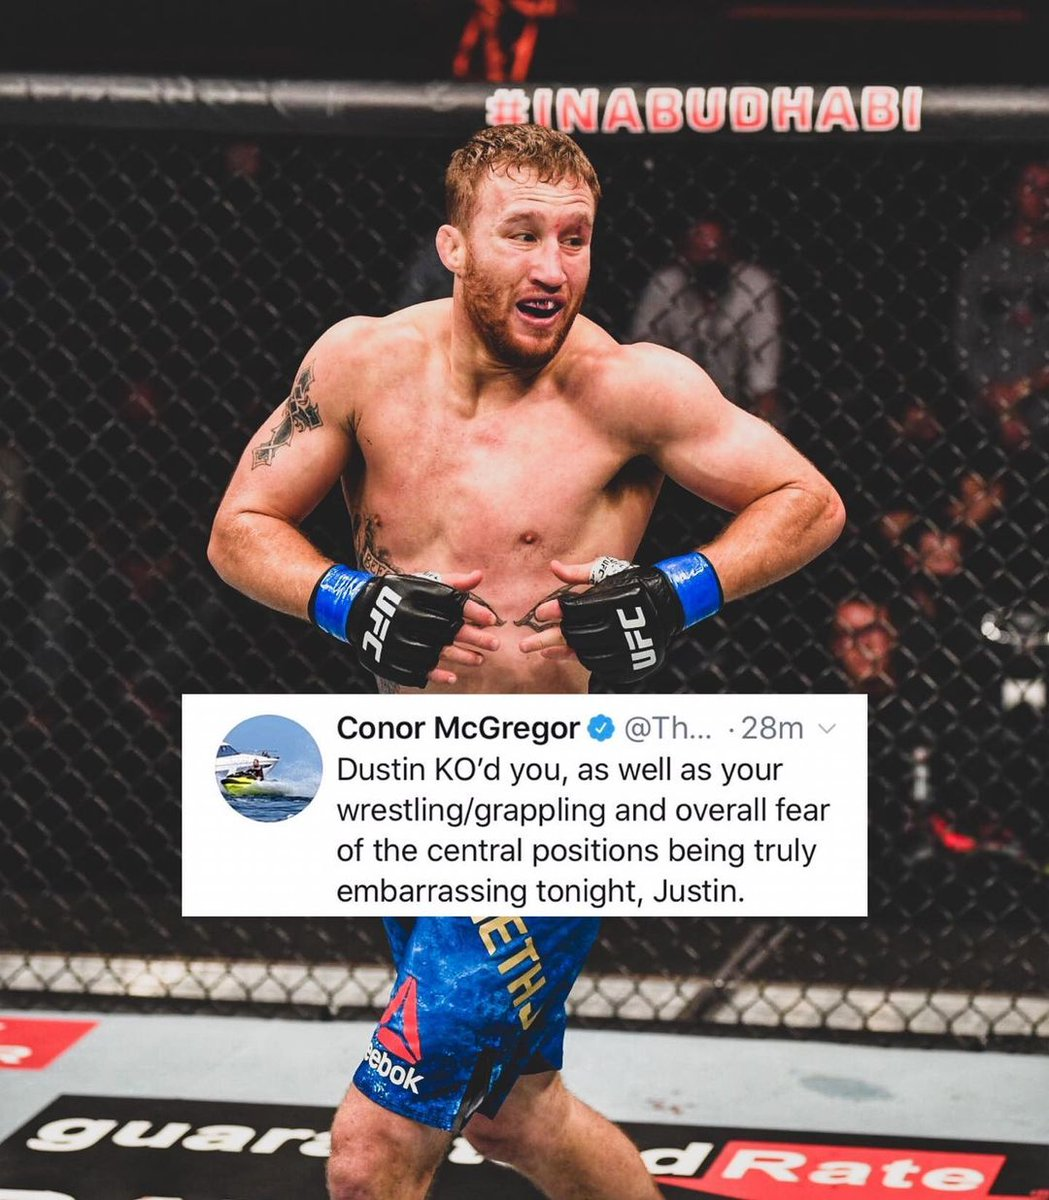 McGregor replies to Justin after he suggests Conor could